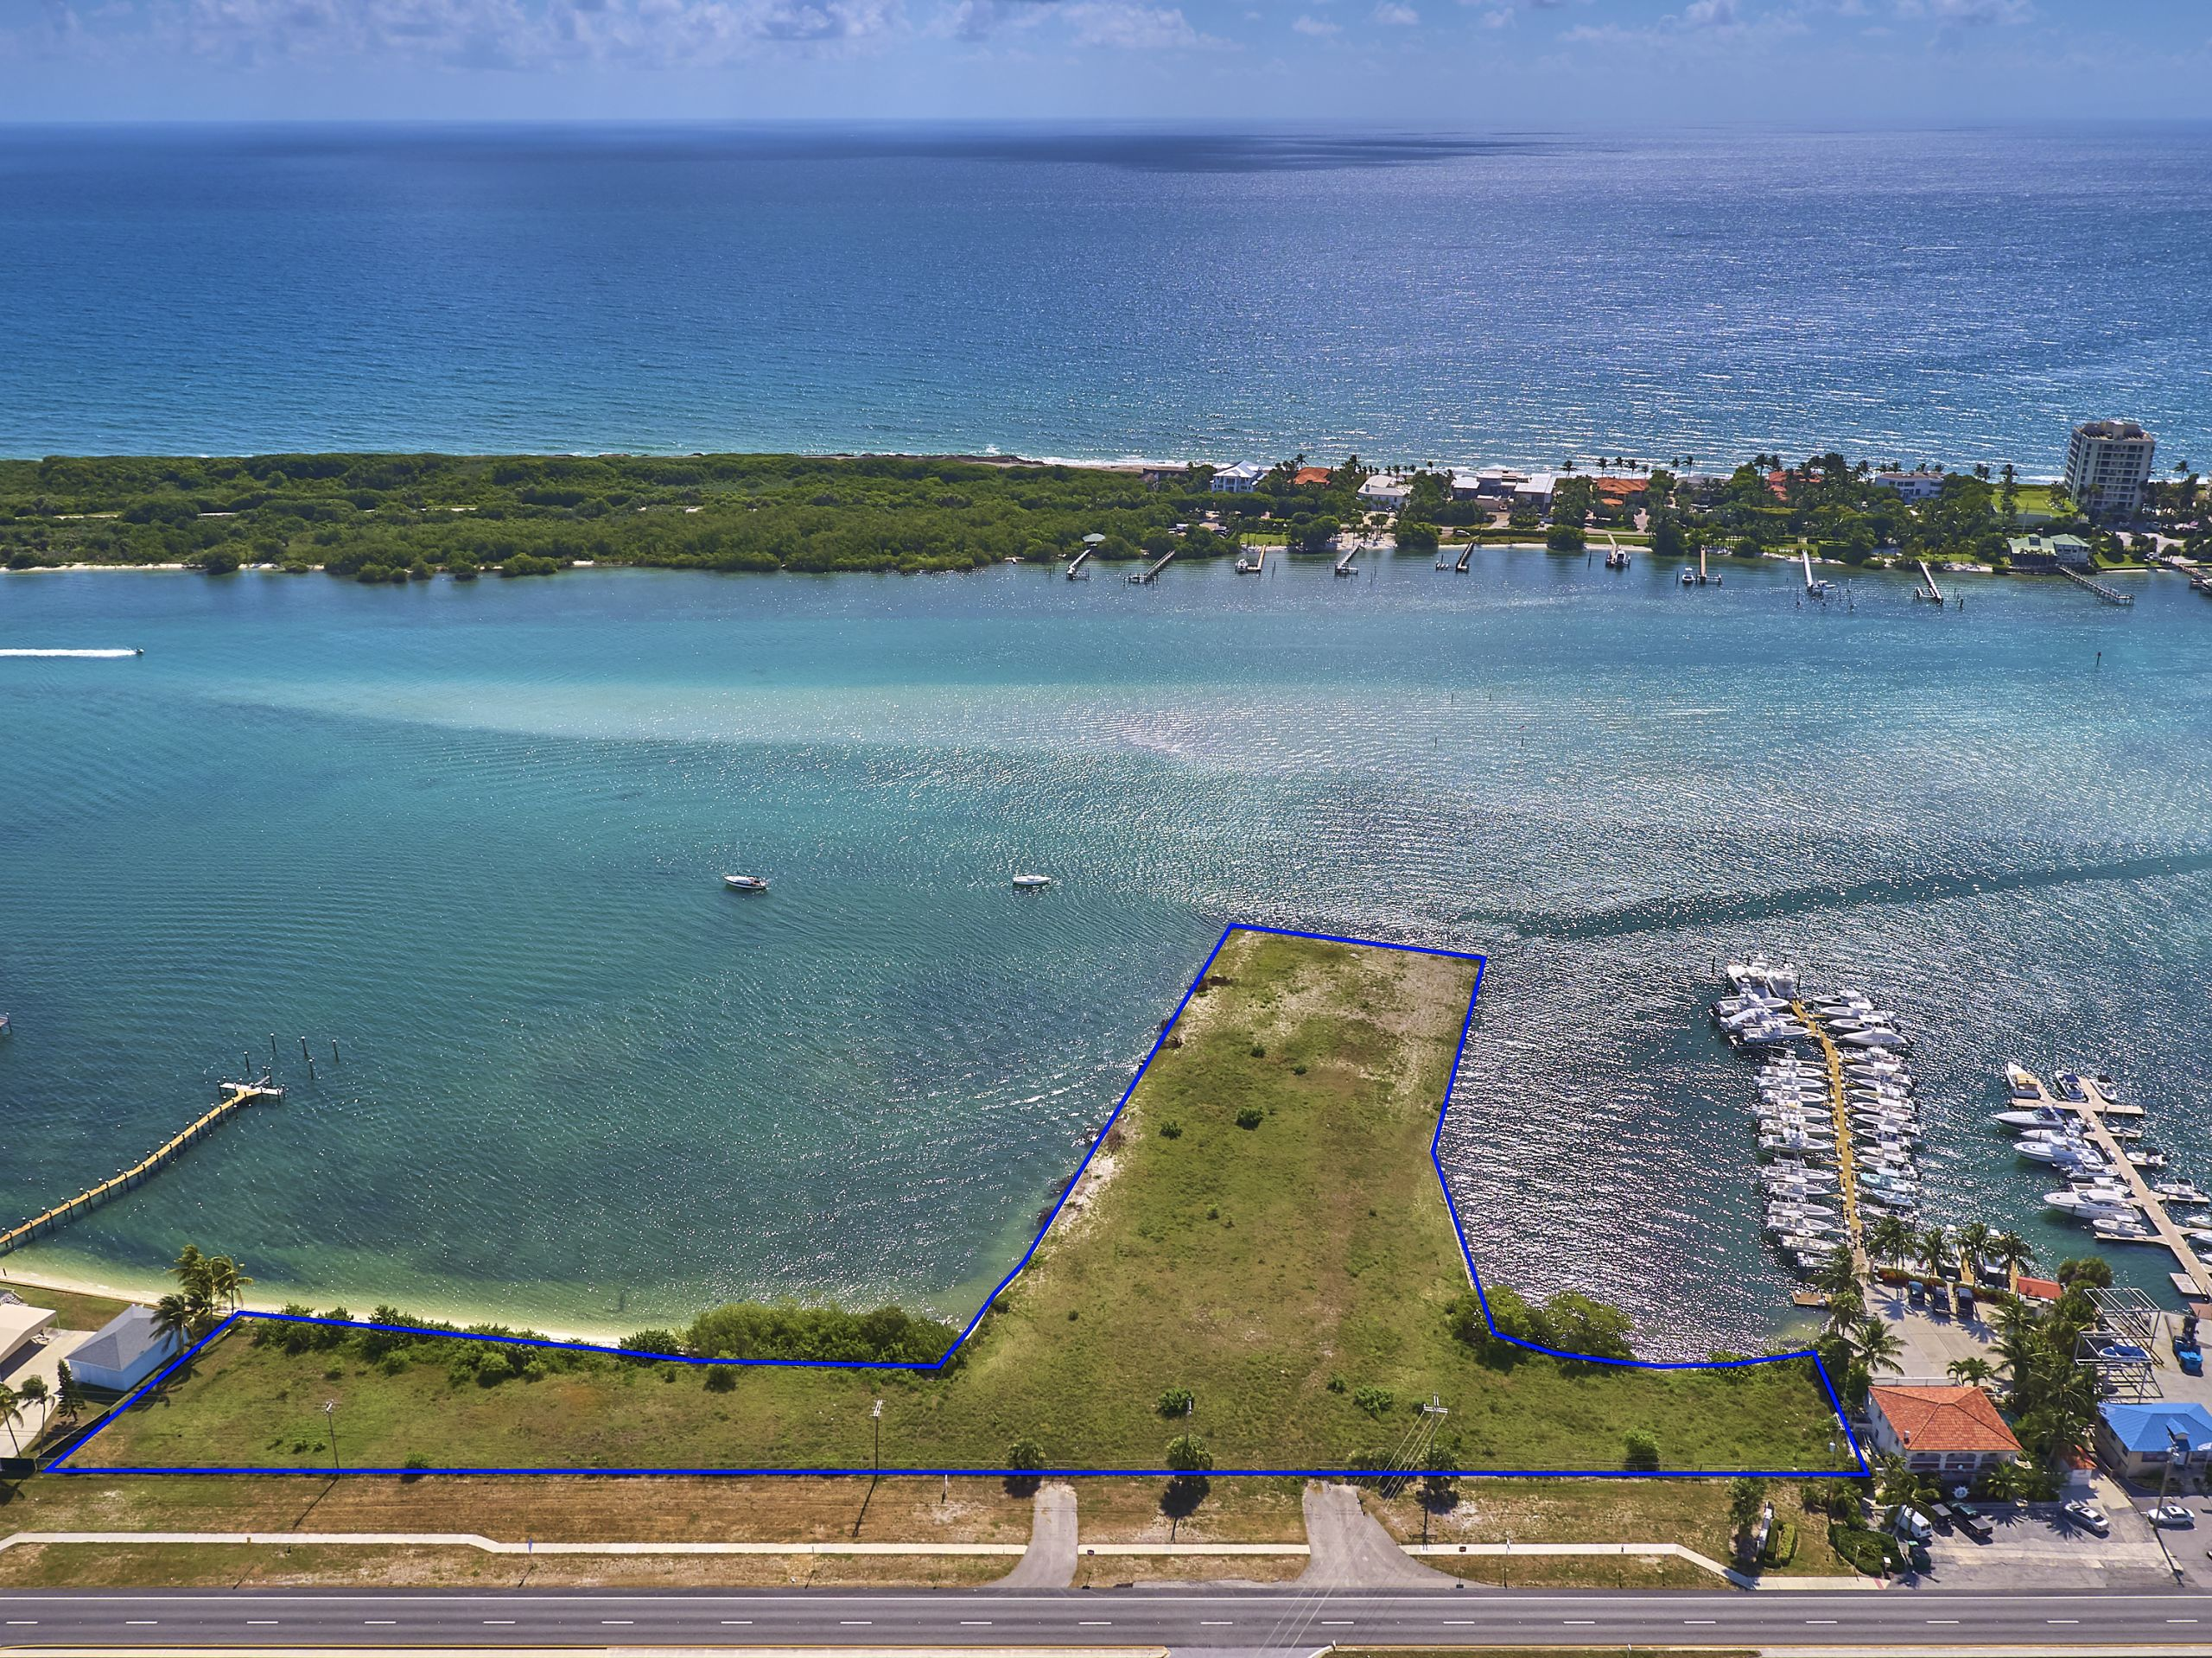 WATERFRONT DEVELOPMENT OPPORTUNITY IN TEQUESTA